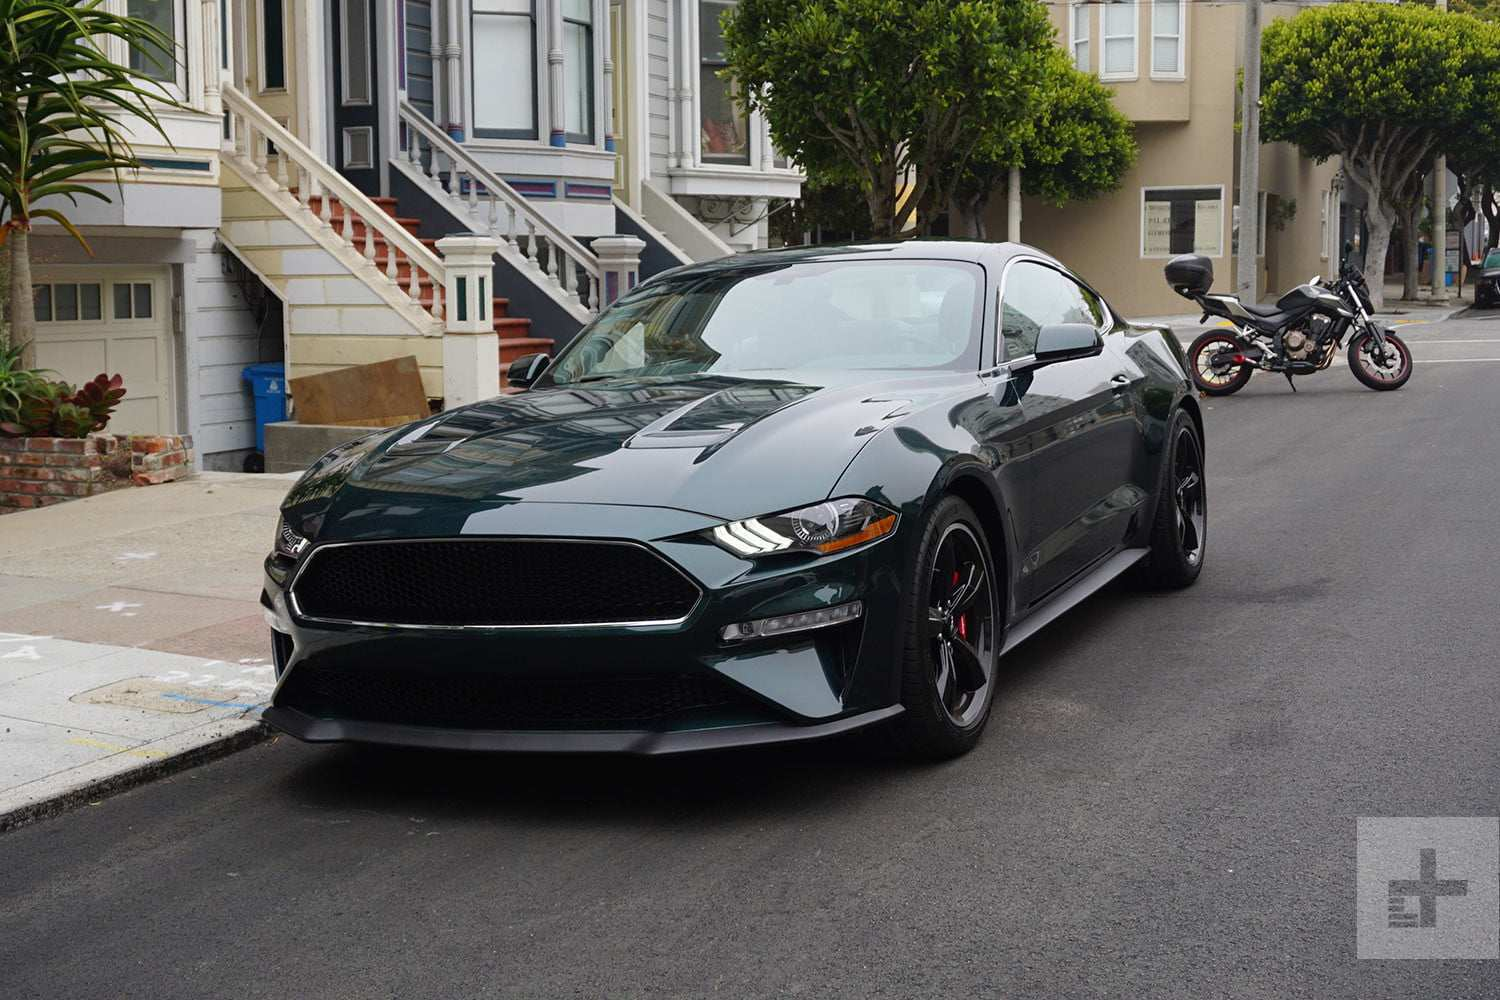 67 Great The Ford Bullitt 2019 For Sale First Drive Price Performance And Review Speed Test with The Ford Bullitt 2019 For Sale First Drive Price Performance And Review